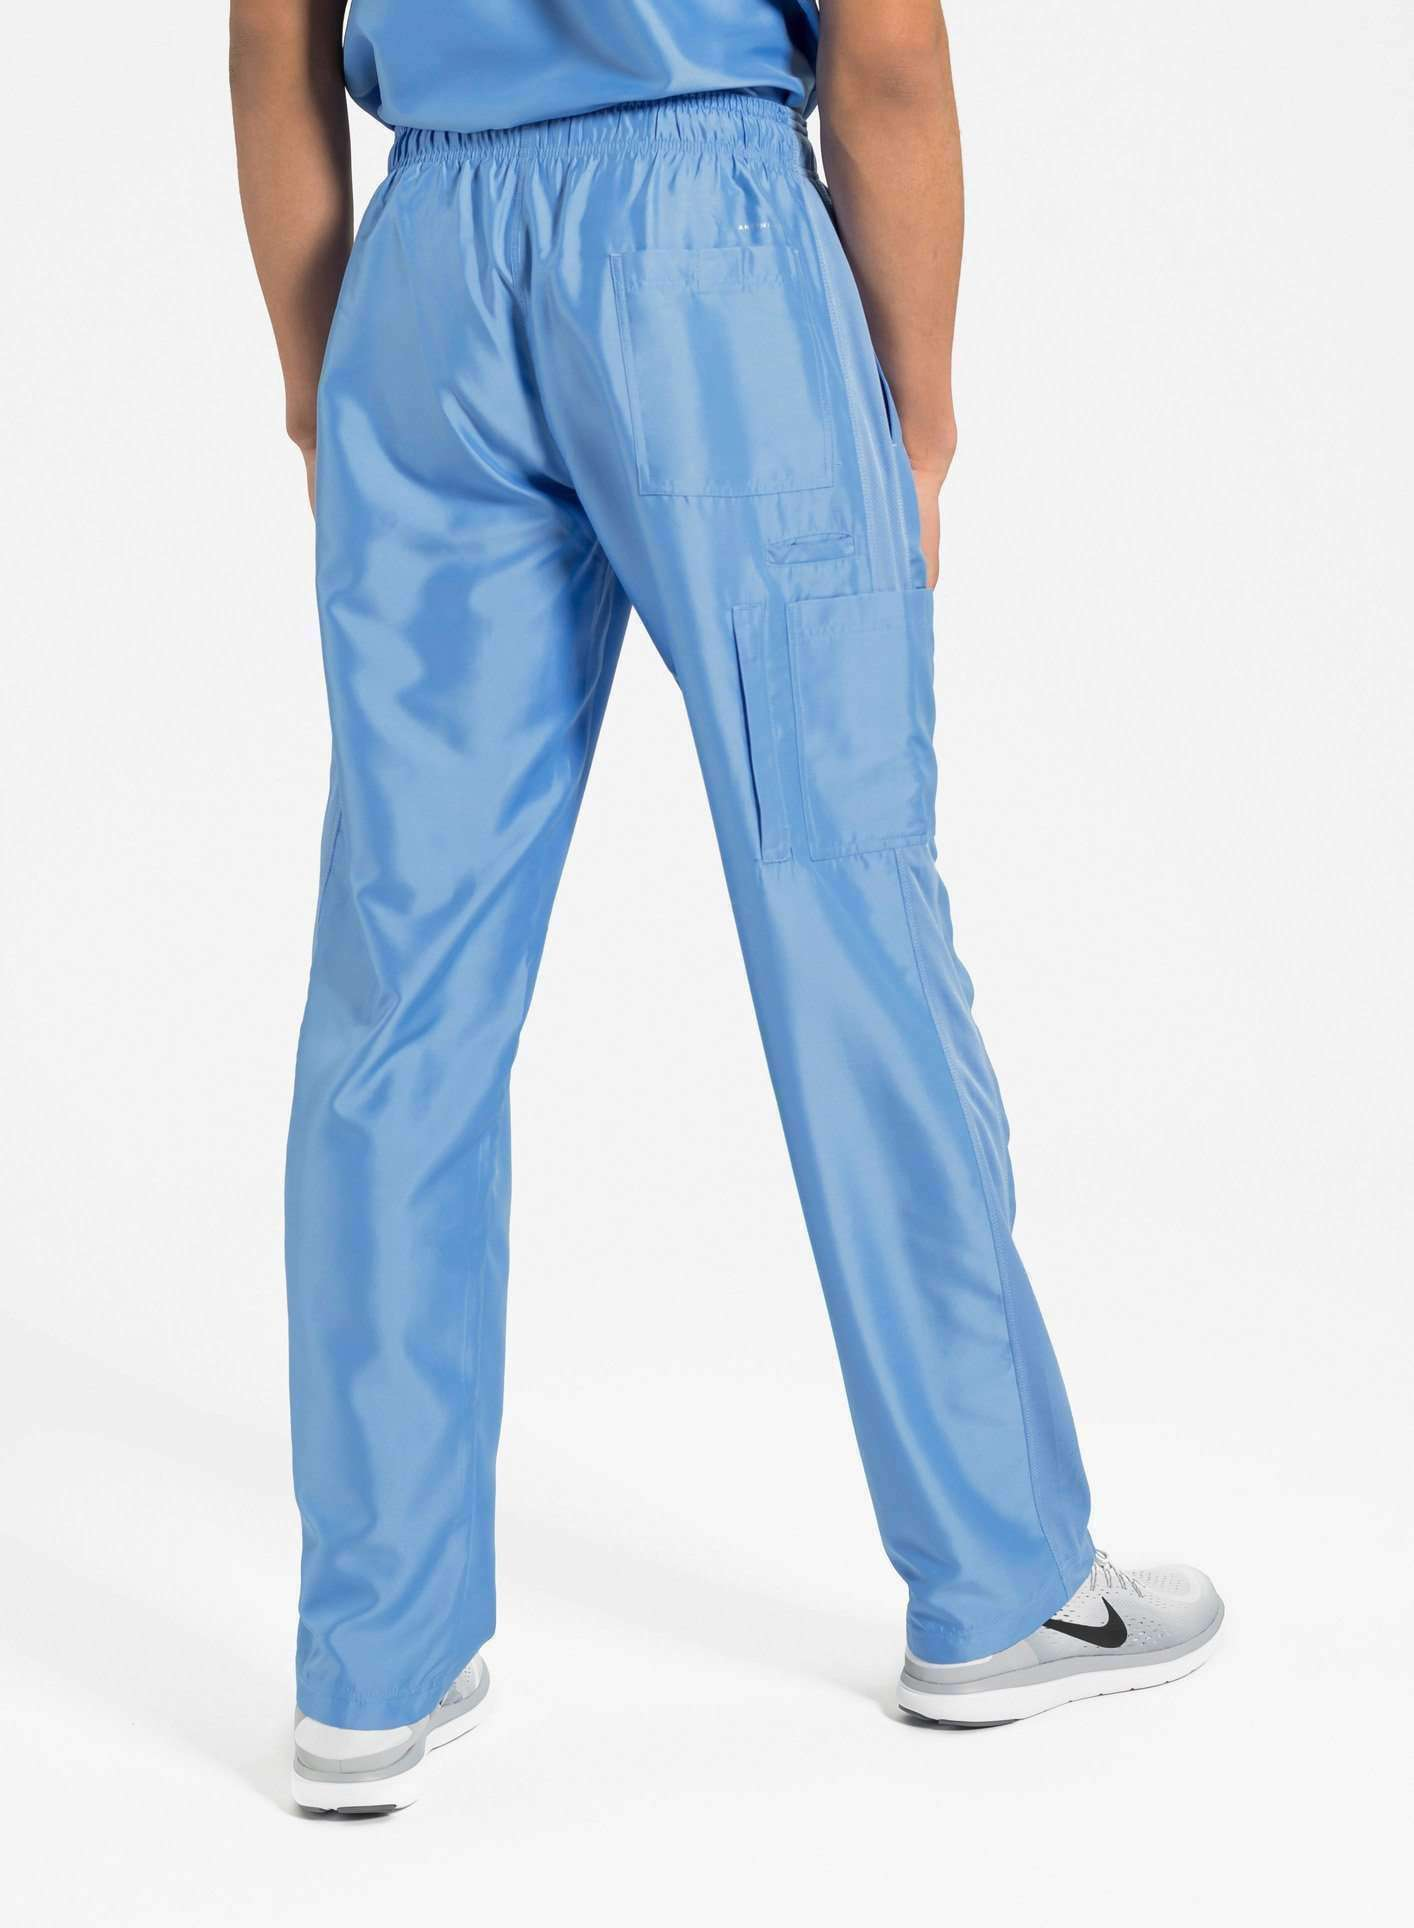 mens Elements cargo pocket relaxed fit scrub pants ceil blue